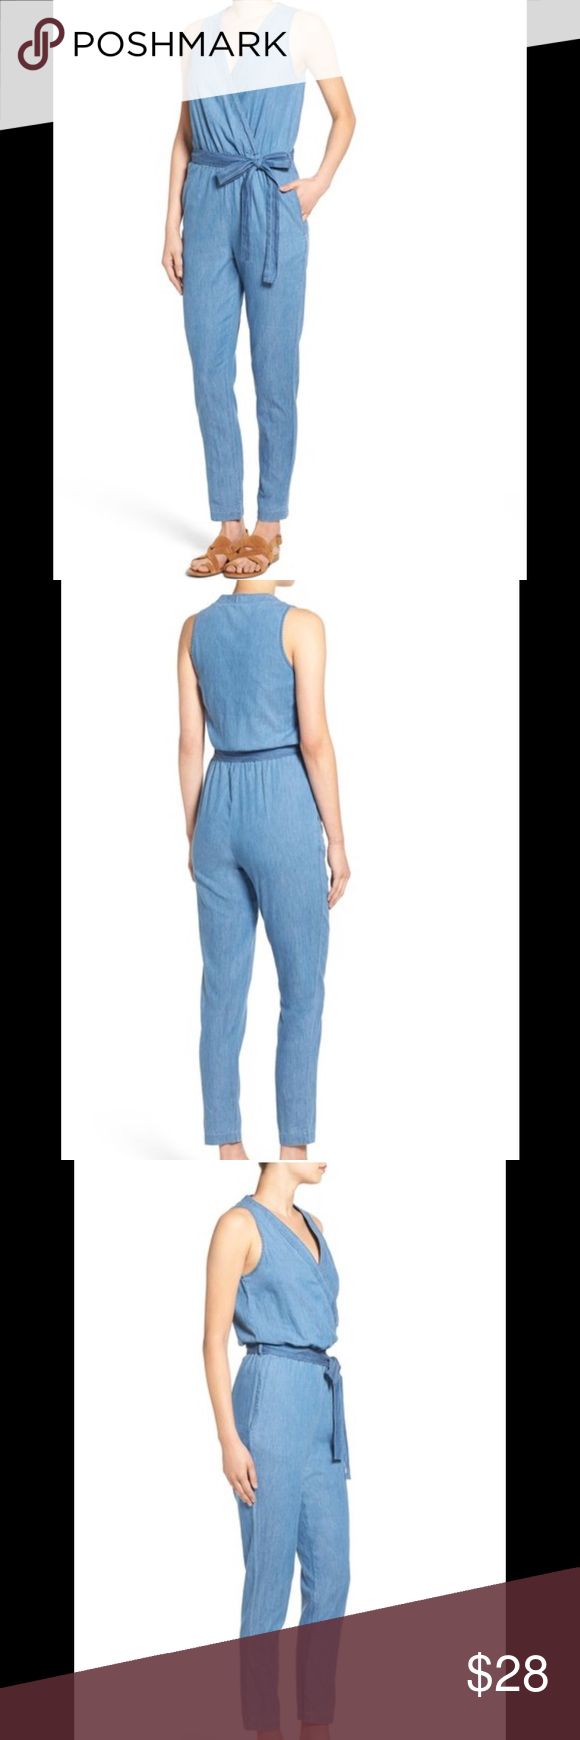 97de1e0b9f16 Mimi Chica Denim Jumpsuit. Brand New. Nordstrom Mimi Chica Denim Jumpsuit.  Soft chambray